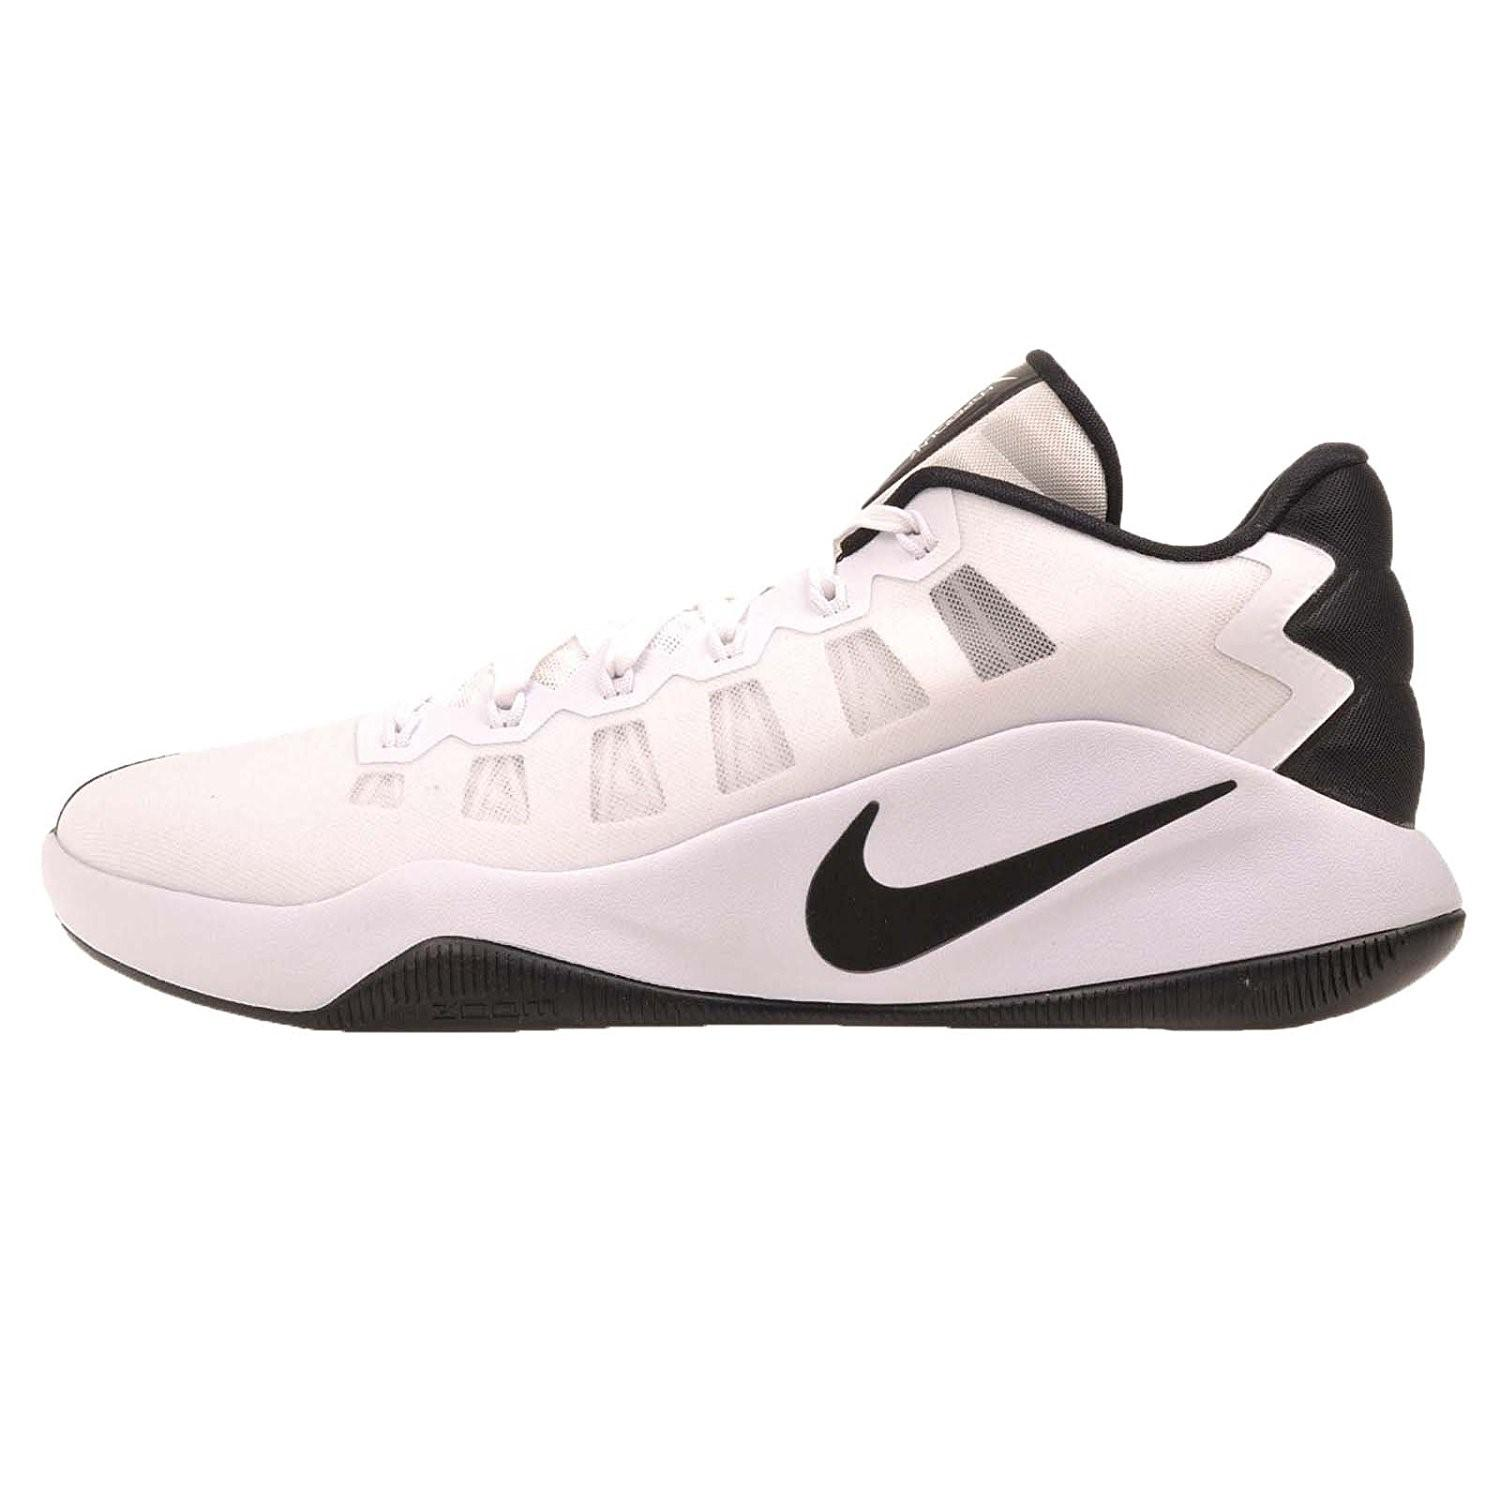 outlet store 15520 97d79 ... release date lyst nike hyperdunk 2016 low basketball shoes in white for  men 5ccde 69ed4